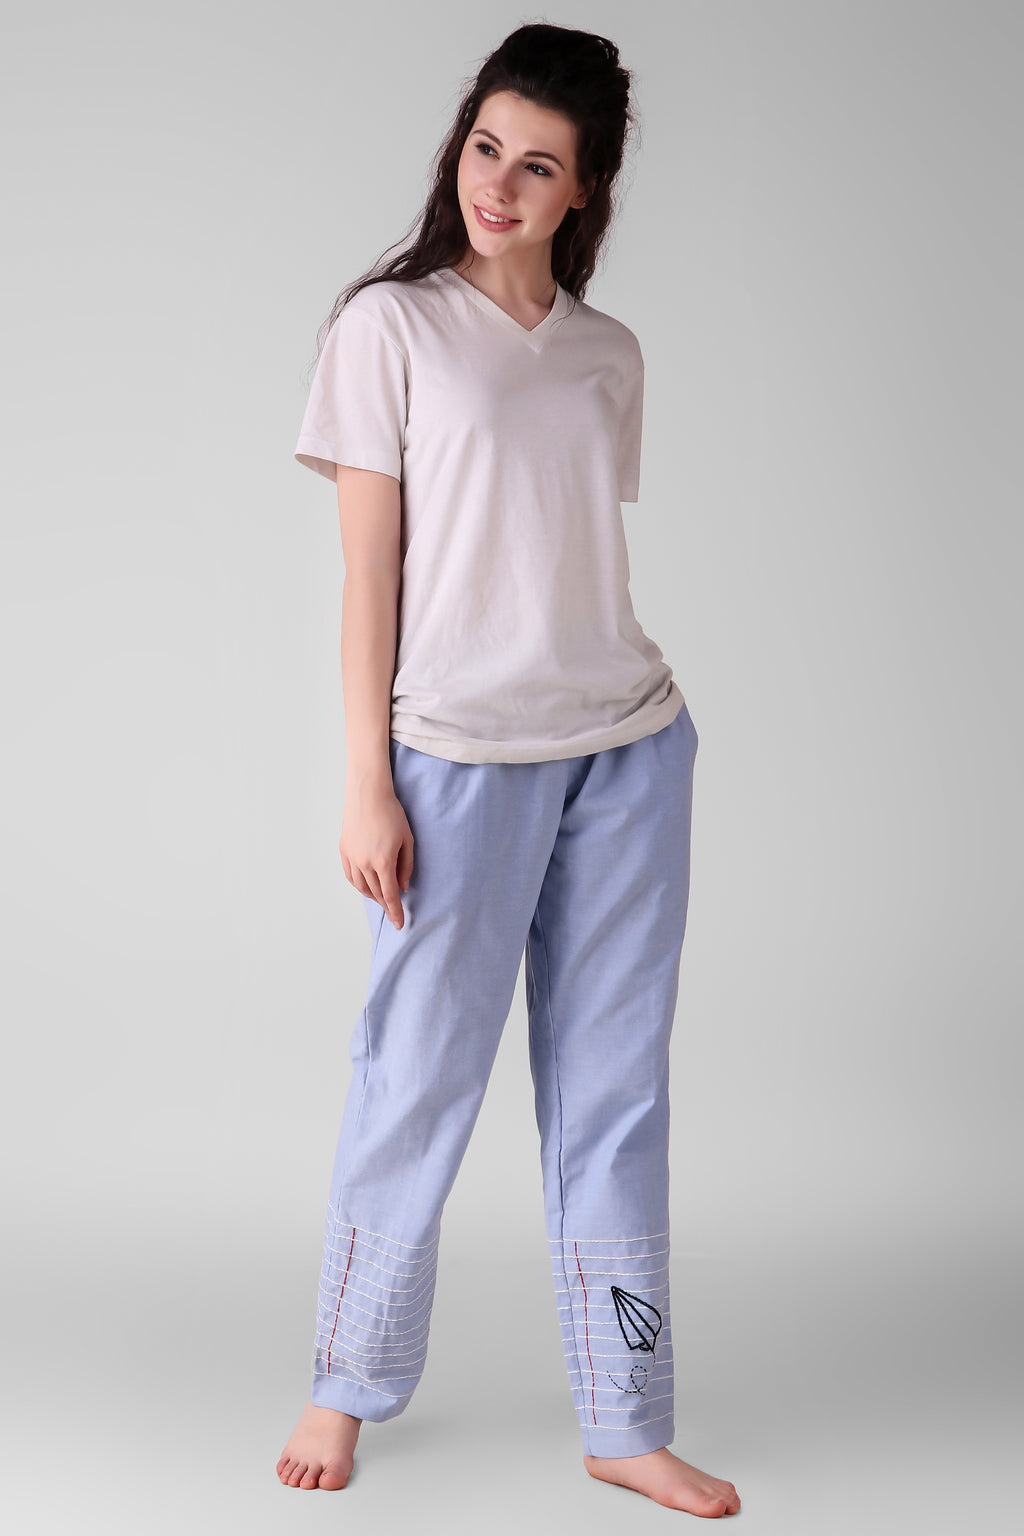 The Notebook, Unisex Pyjamas